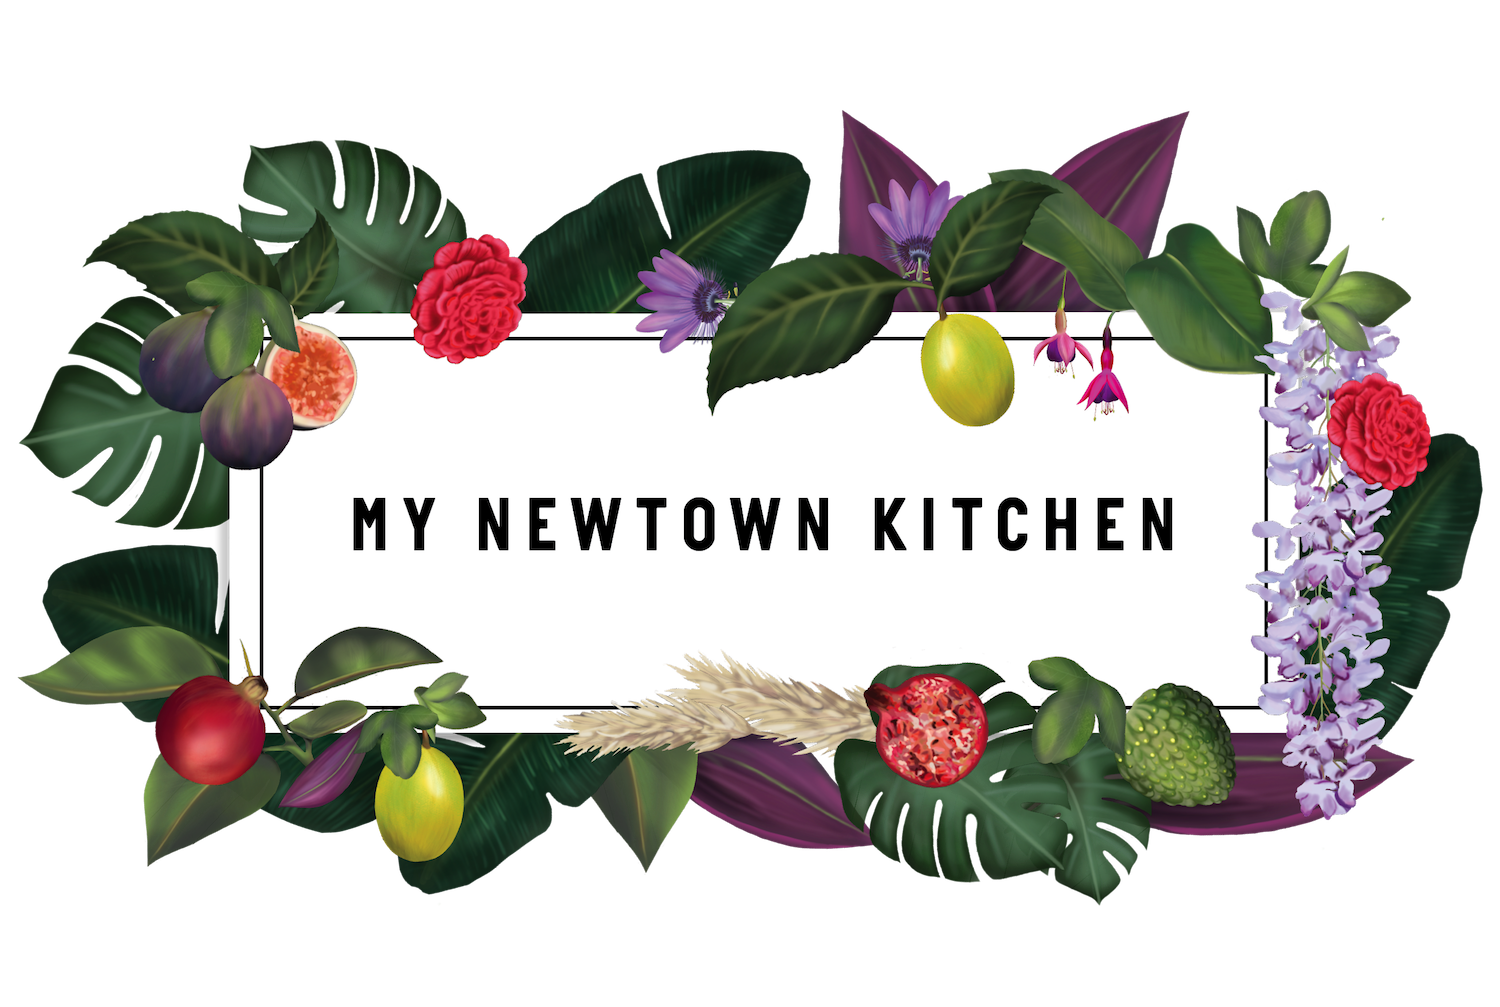 My Newtown Kitchen